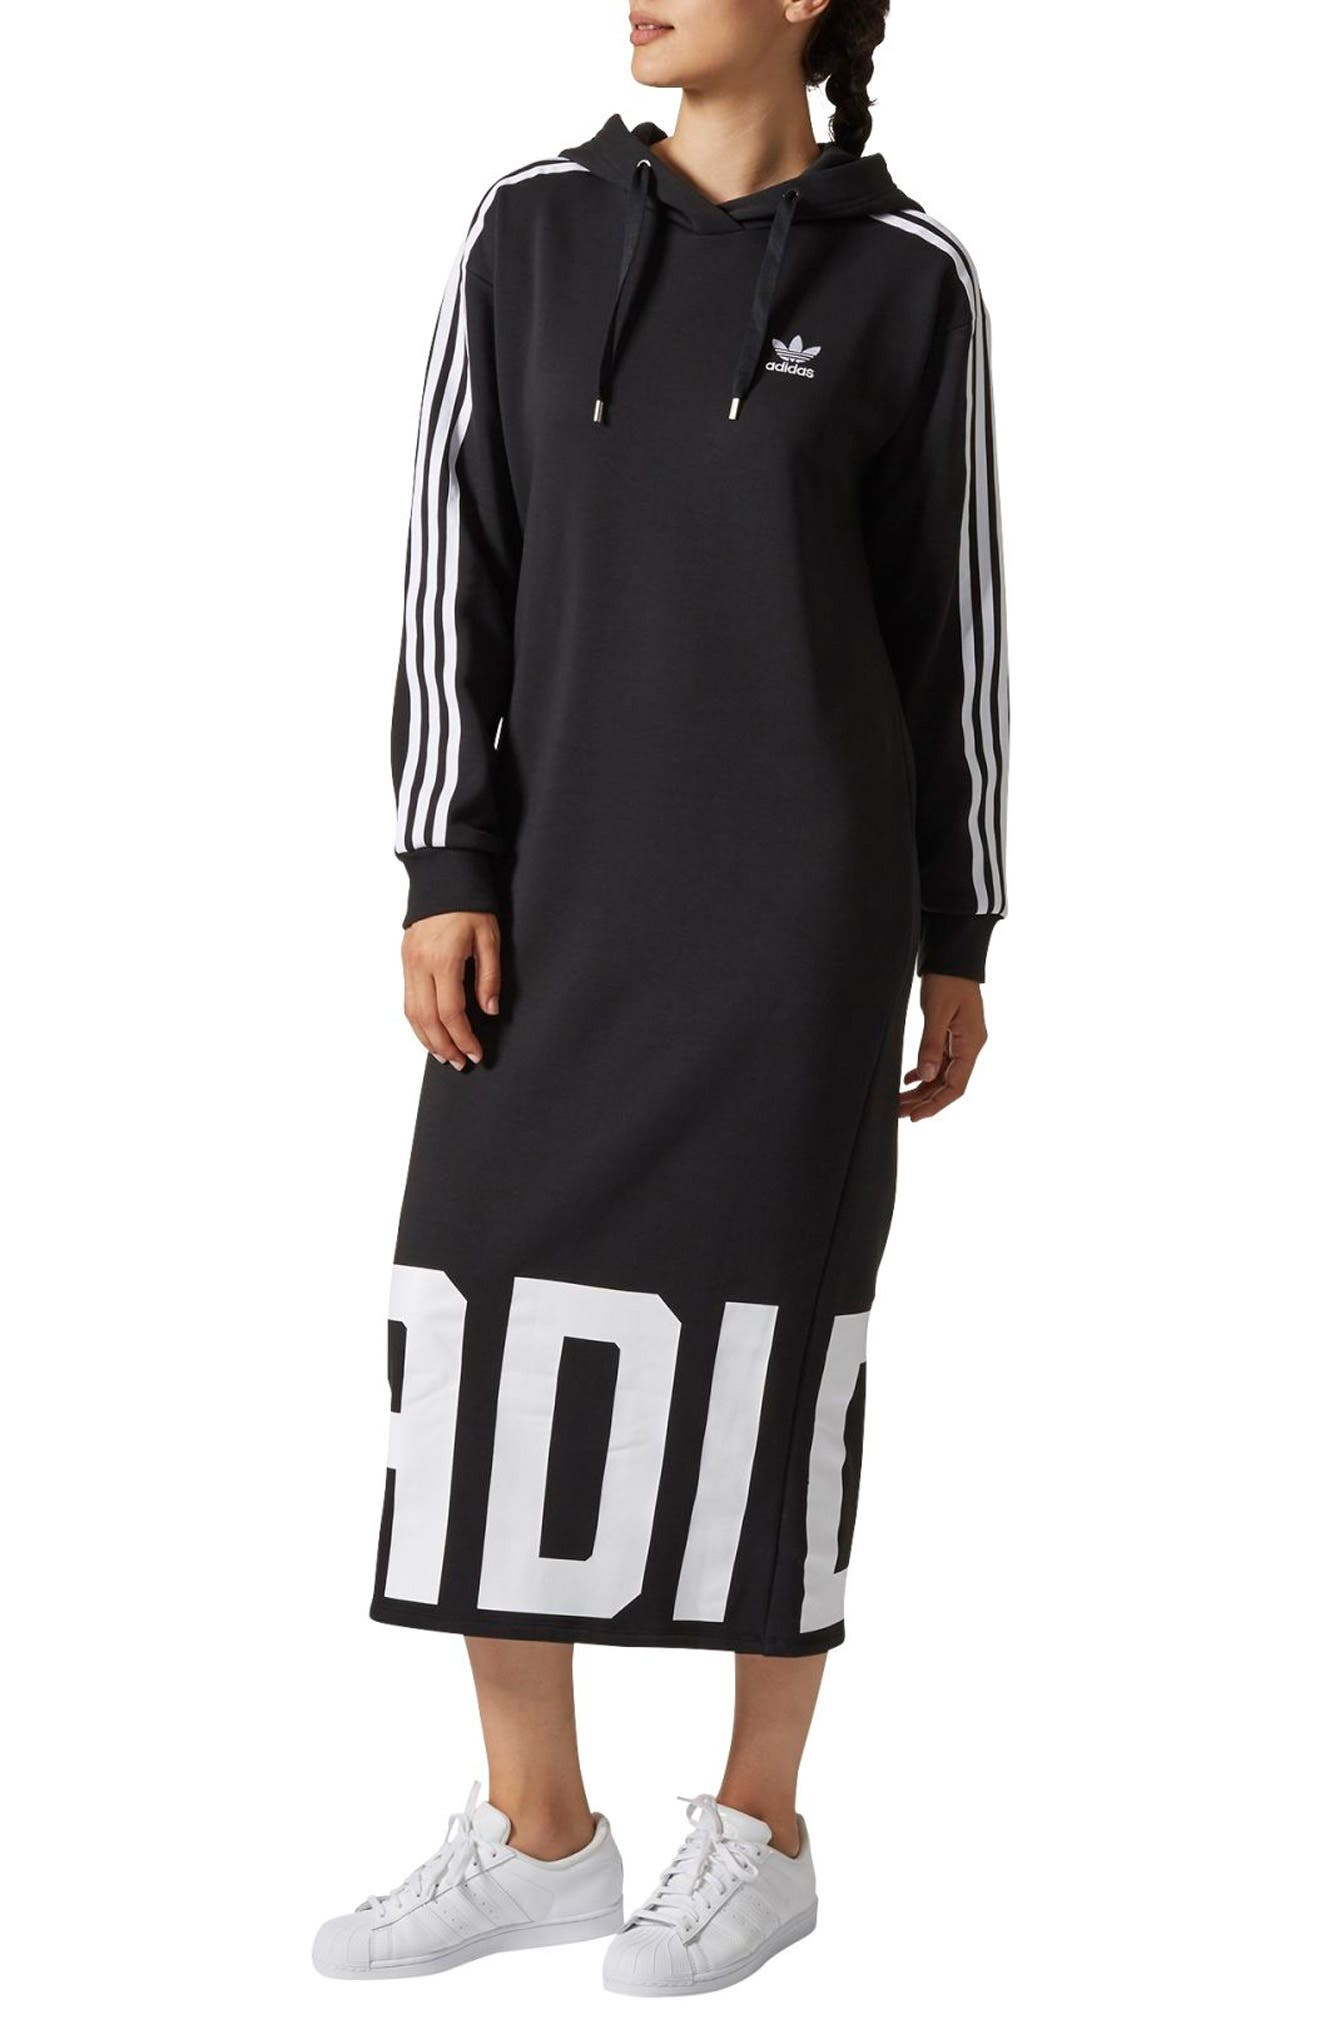 adidas Bold Ages Hooded Dress